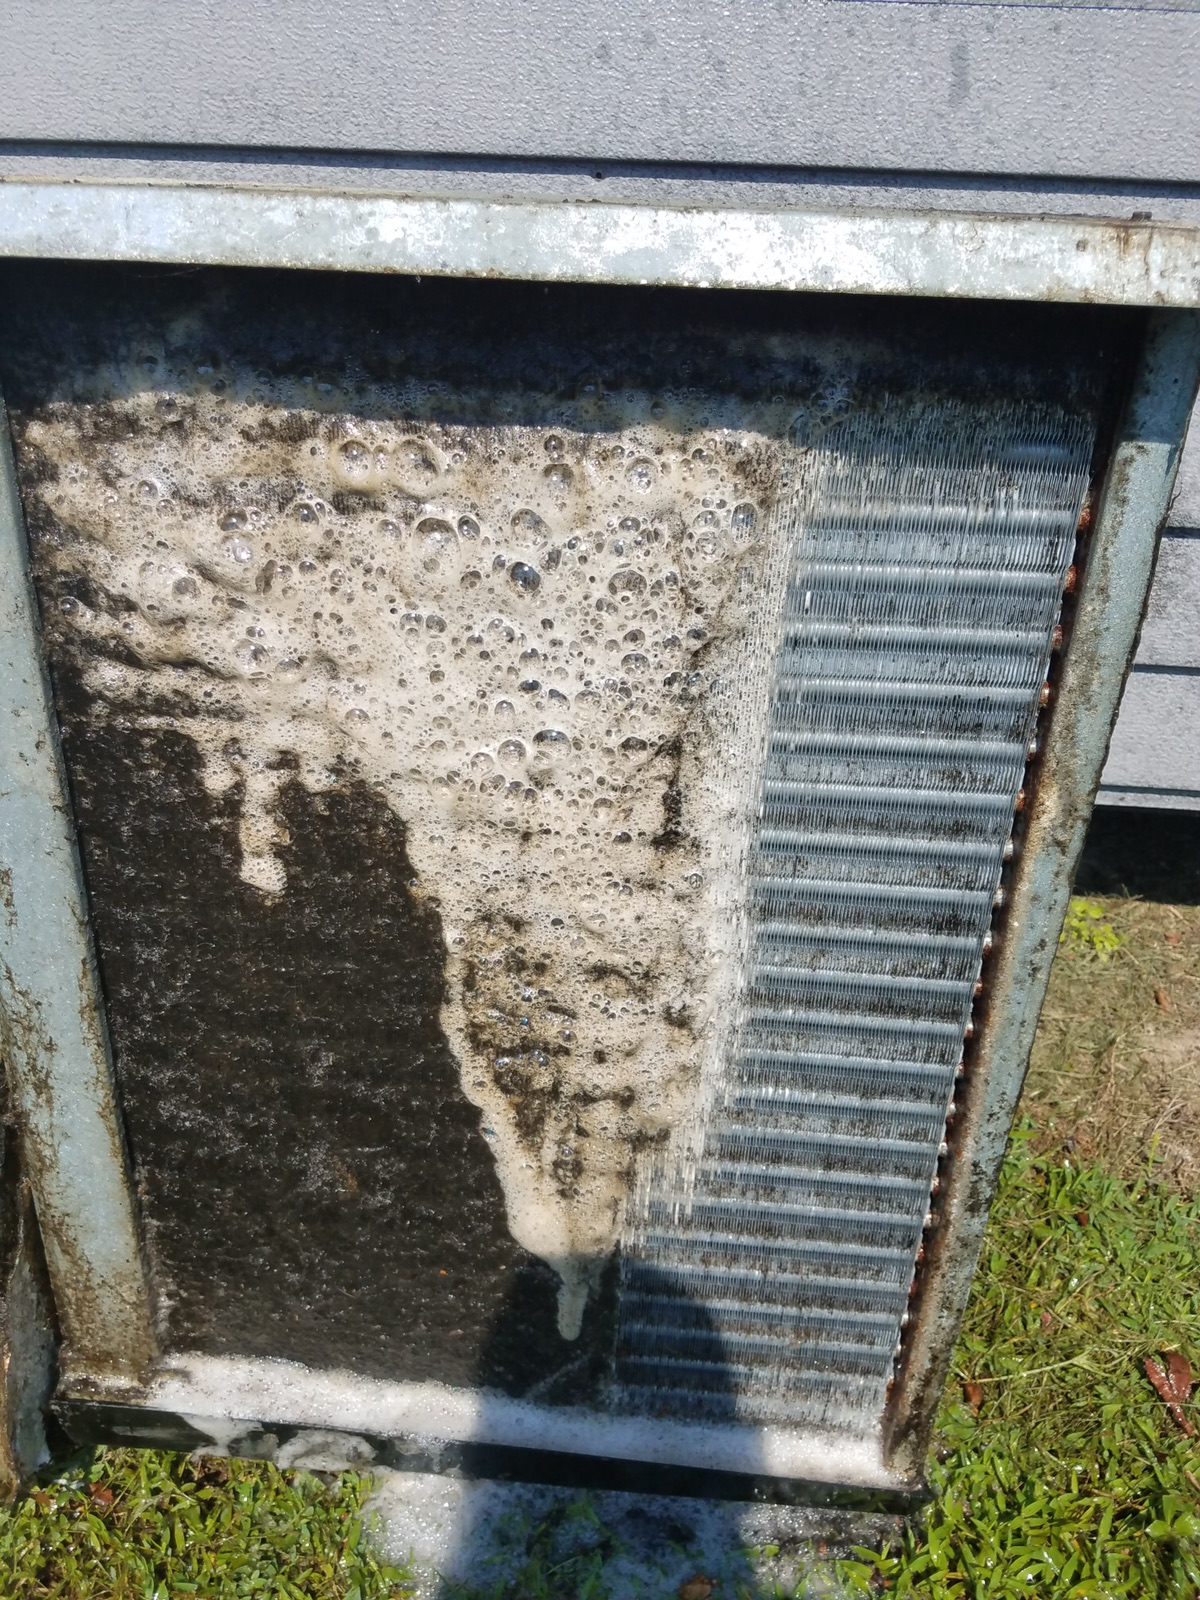 Evaporator coil being cleaned with foamy cleanser - before cleaning on the left, after cleaning on the right